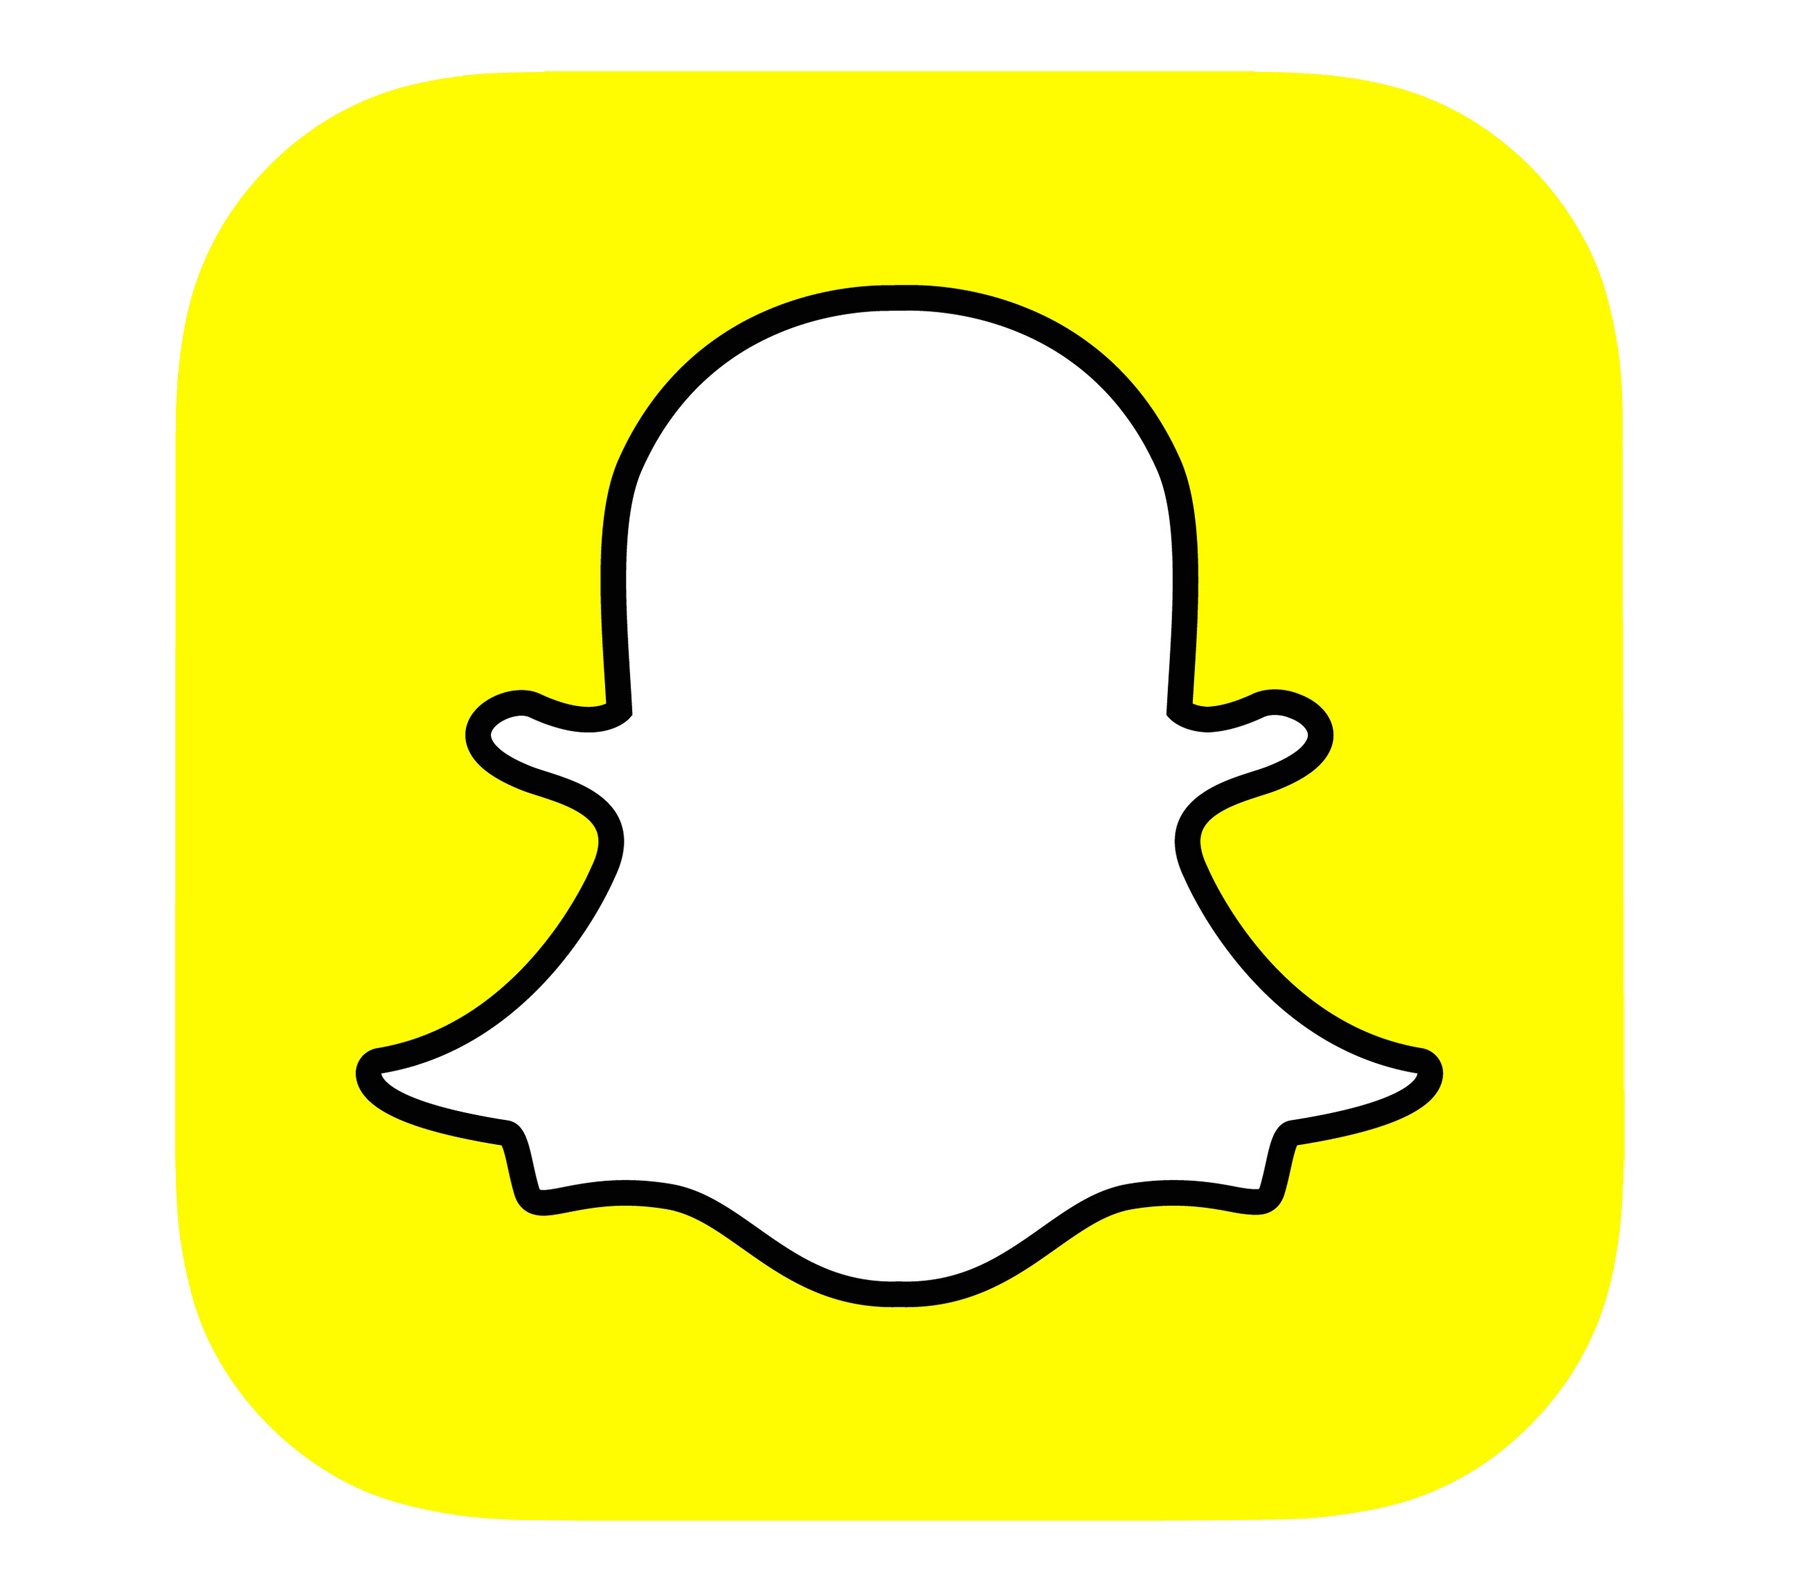 Snapchat logo png transparent background. Free icons and